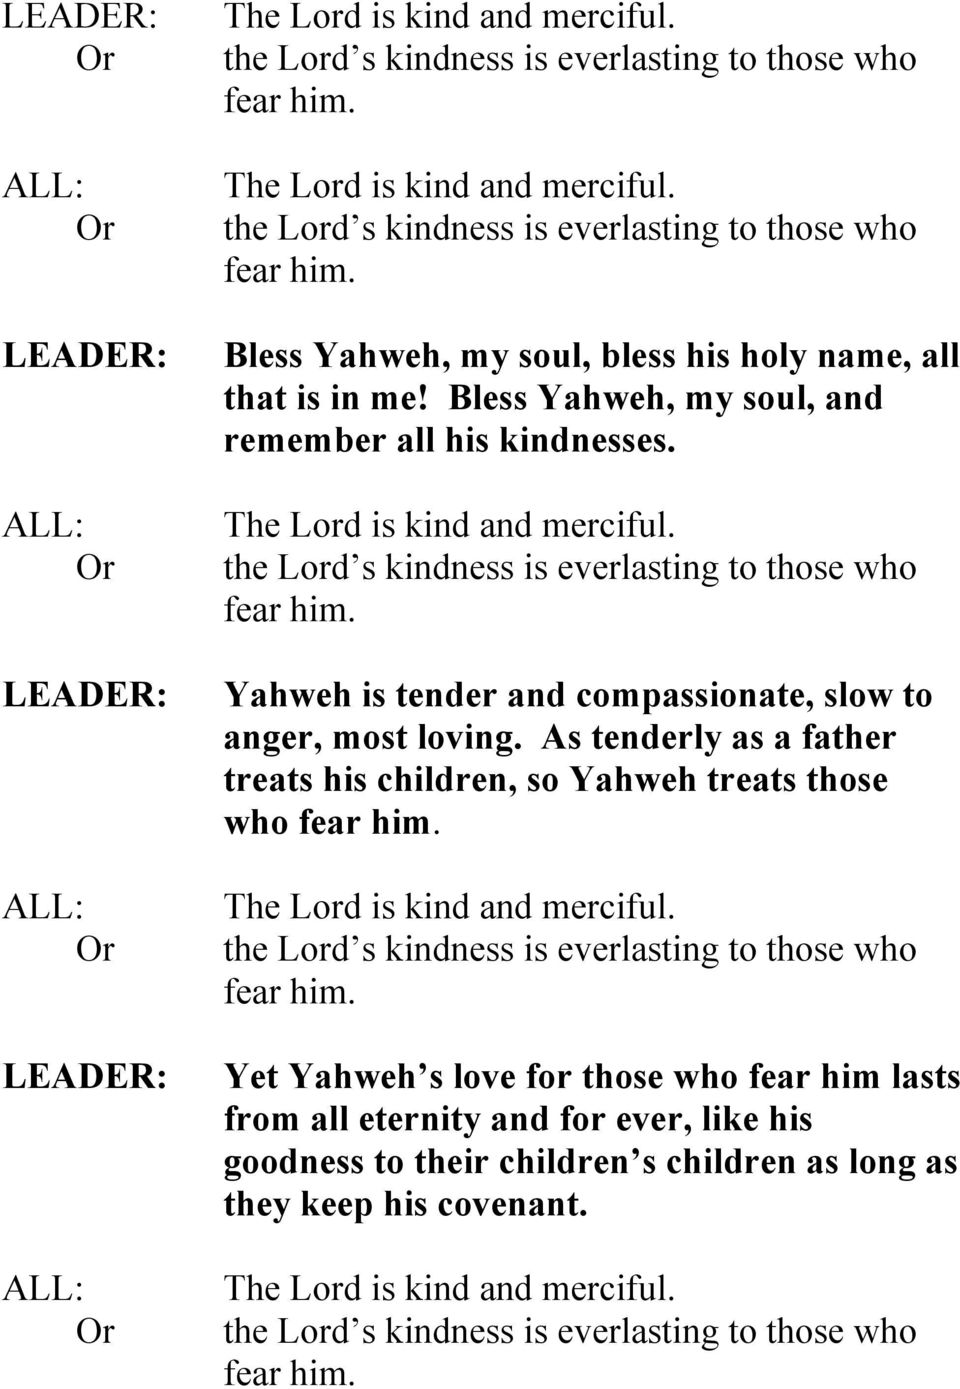 Yahweh is tender and compassionate, slow to anger, most loving. As tenderly as a father treats his children, so Yahweh treats those who fear him. The Lord is kind and merciful.